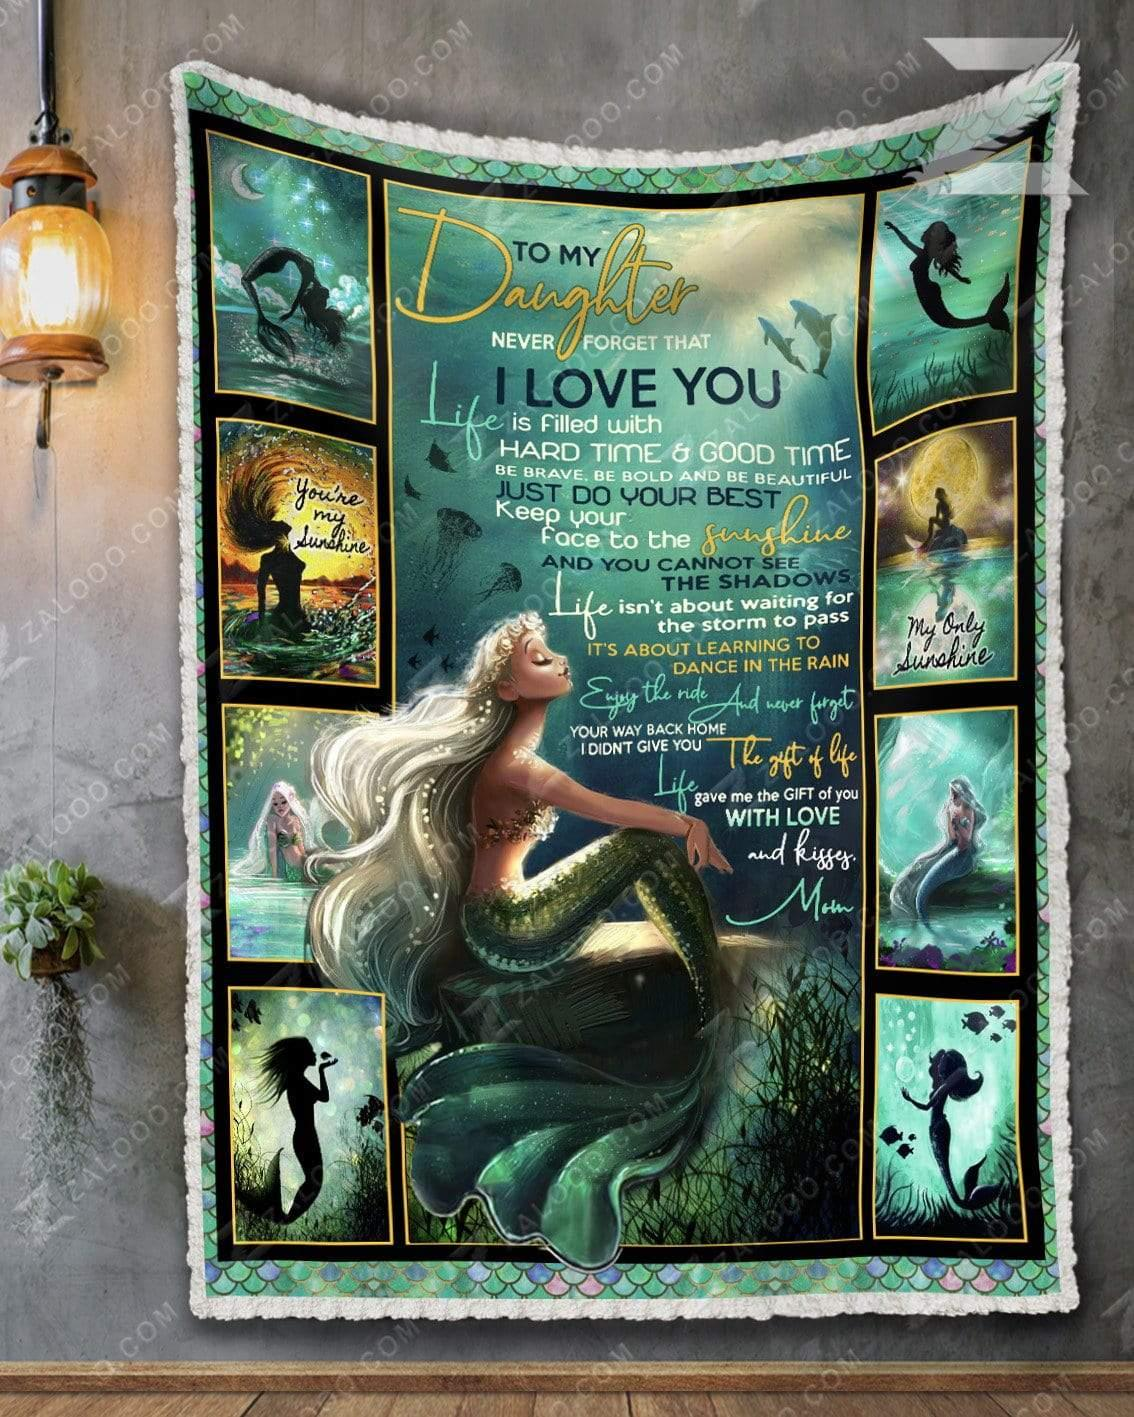 To my daughter never forget that I love you you are my sunshine mermaid blanket 5